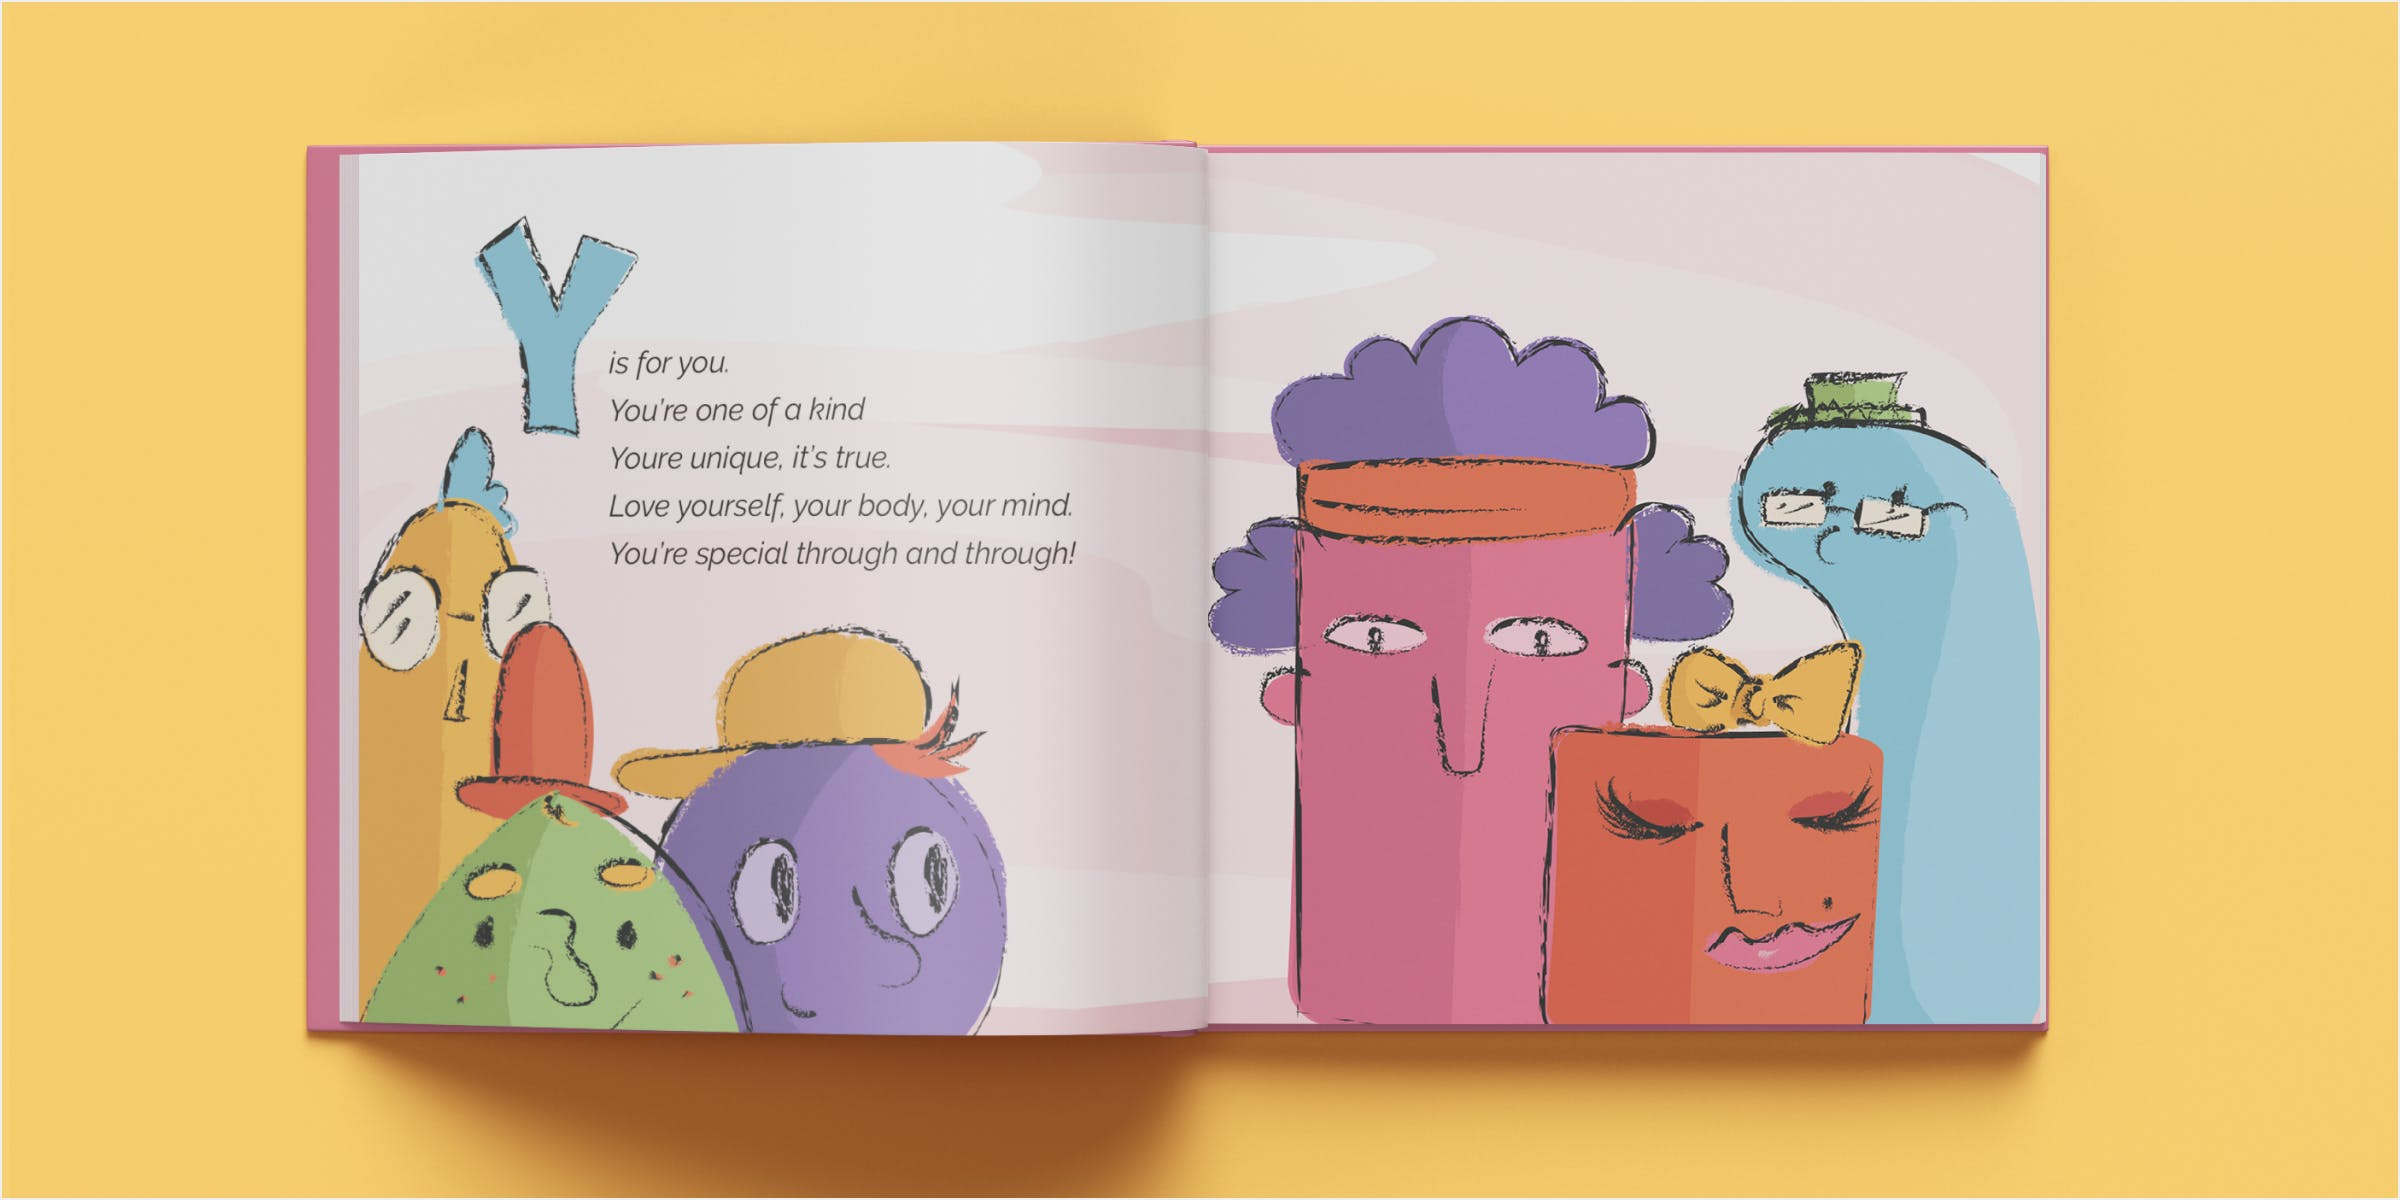 Mockup of you spread in a book. 6 bizarre characters of different shapes, sizes, and colors group together happily.